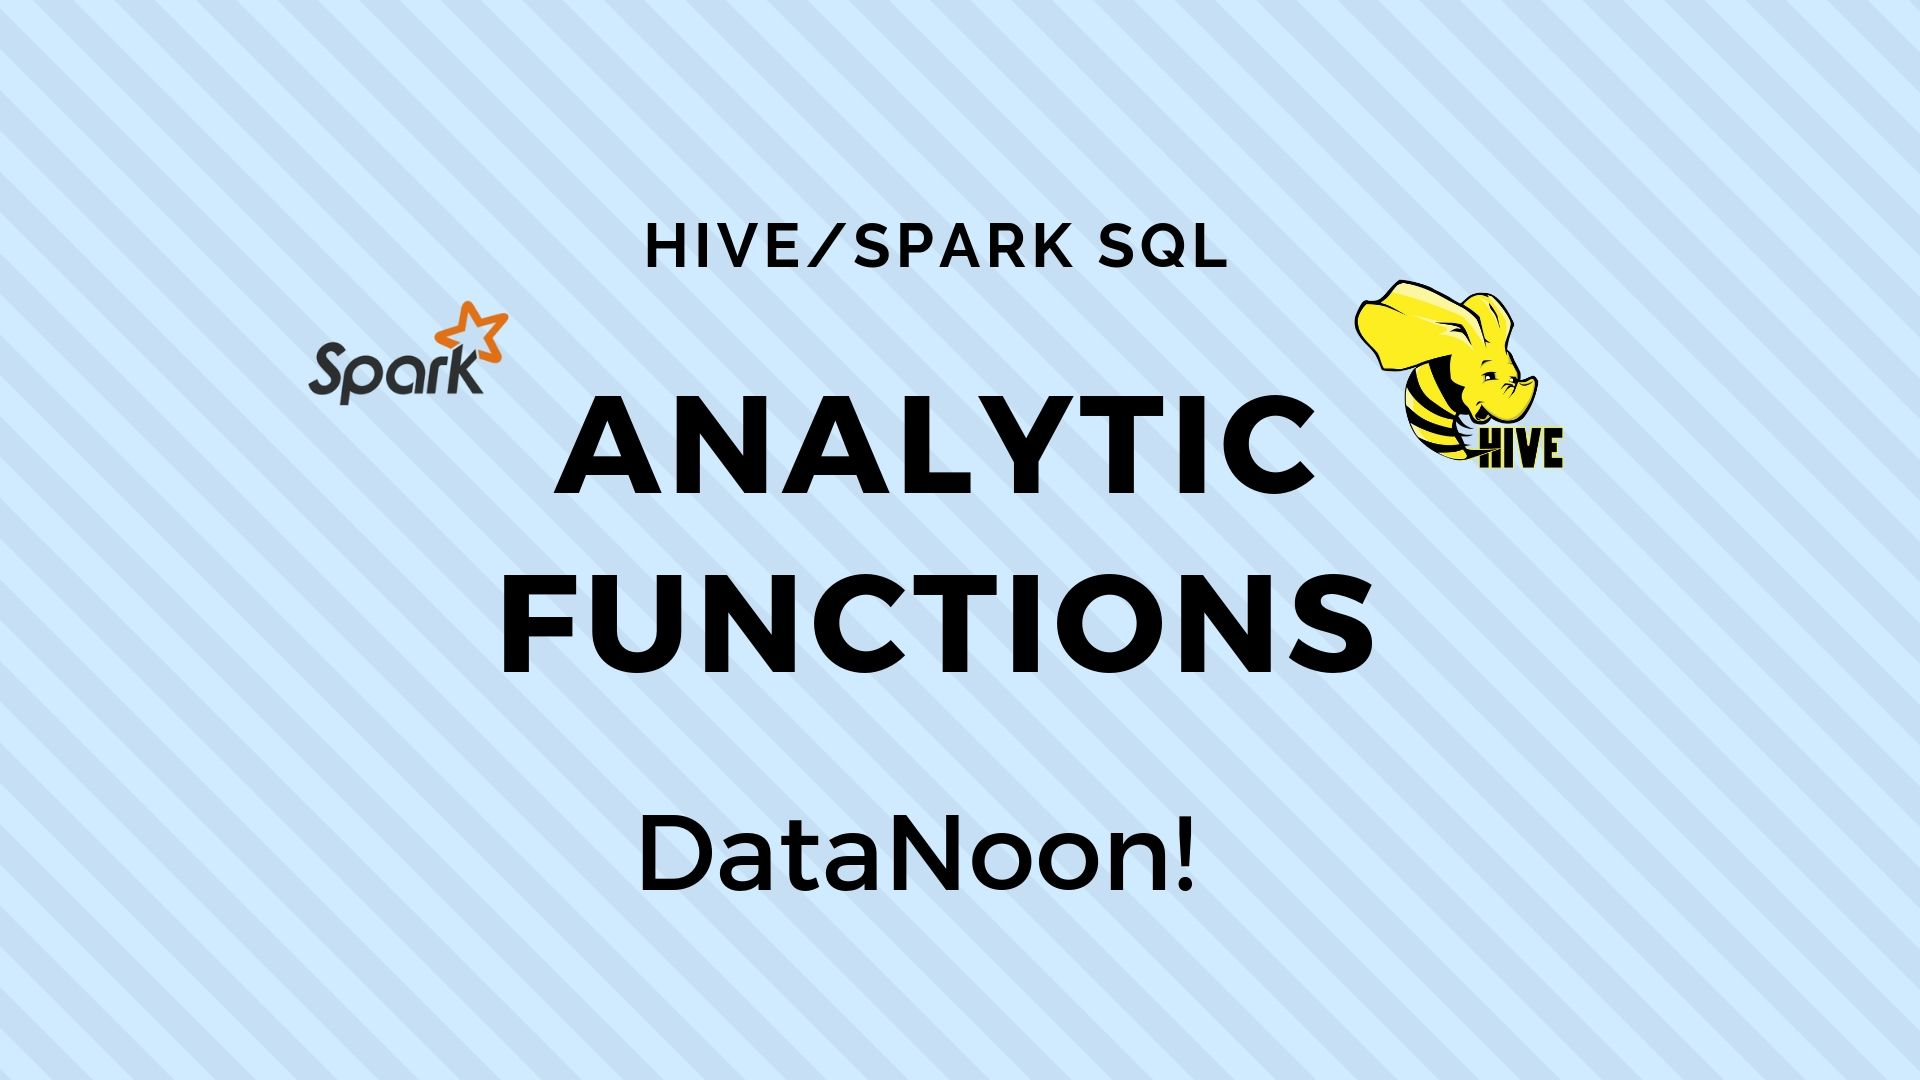 Hive Analytic Functions